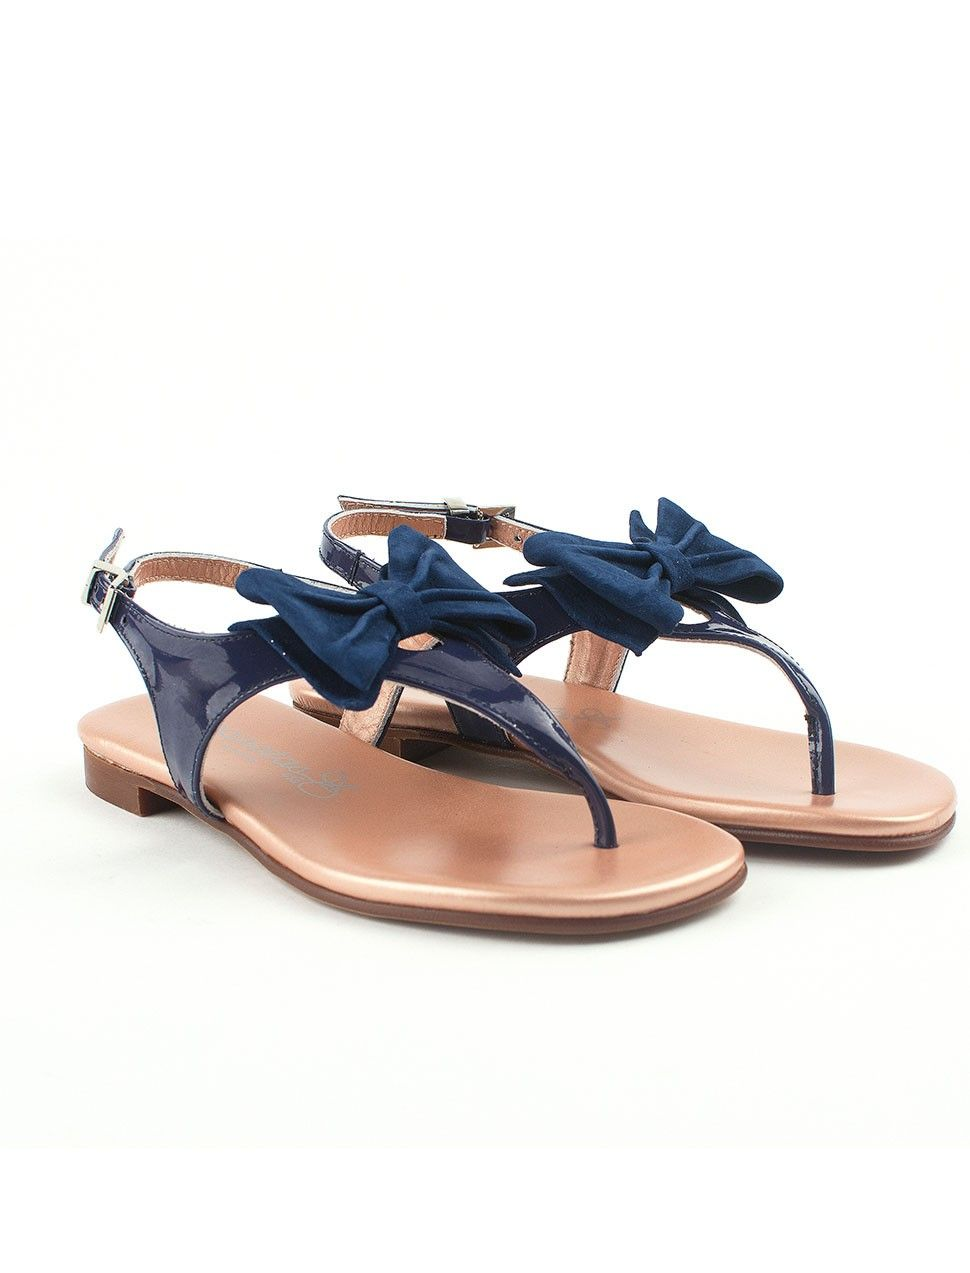 2548d12a1a9fa Dark blue girls sandals with bow from Eli   Eli - Spanish baby ...